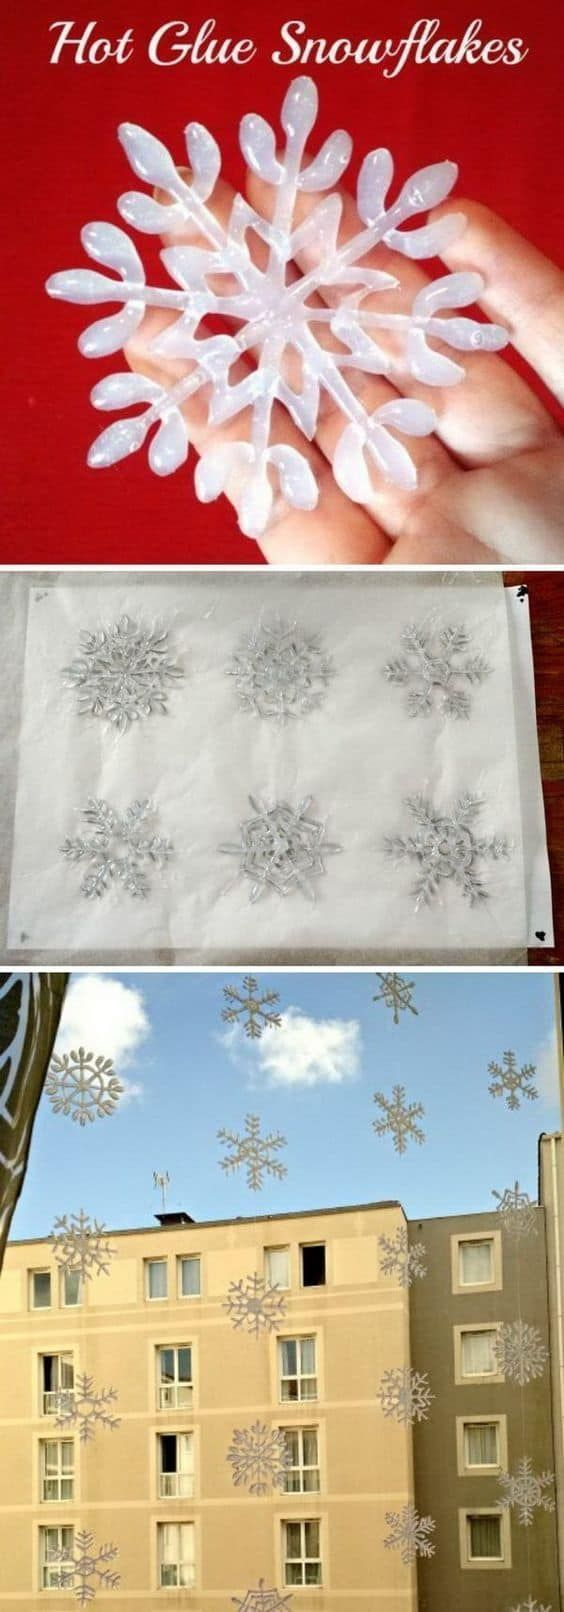 Farmhouse Snow Flake DIY Crafts for Winter Decor After Christmas using dollar store #WinterDe..., #Christmas #Crafts #Decor #DIY #dollar #farmhouse #flake #Snow #Store #Winter #WinterDe #gold decor diy spray painting Farmhouse Snow Flake DIY Crafts for Winter Decor After Christmas using dollar store #WinterDe...